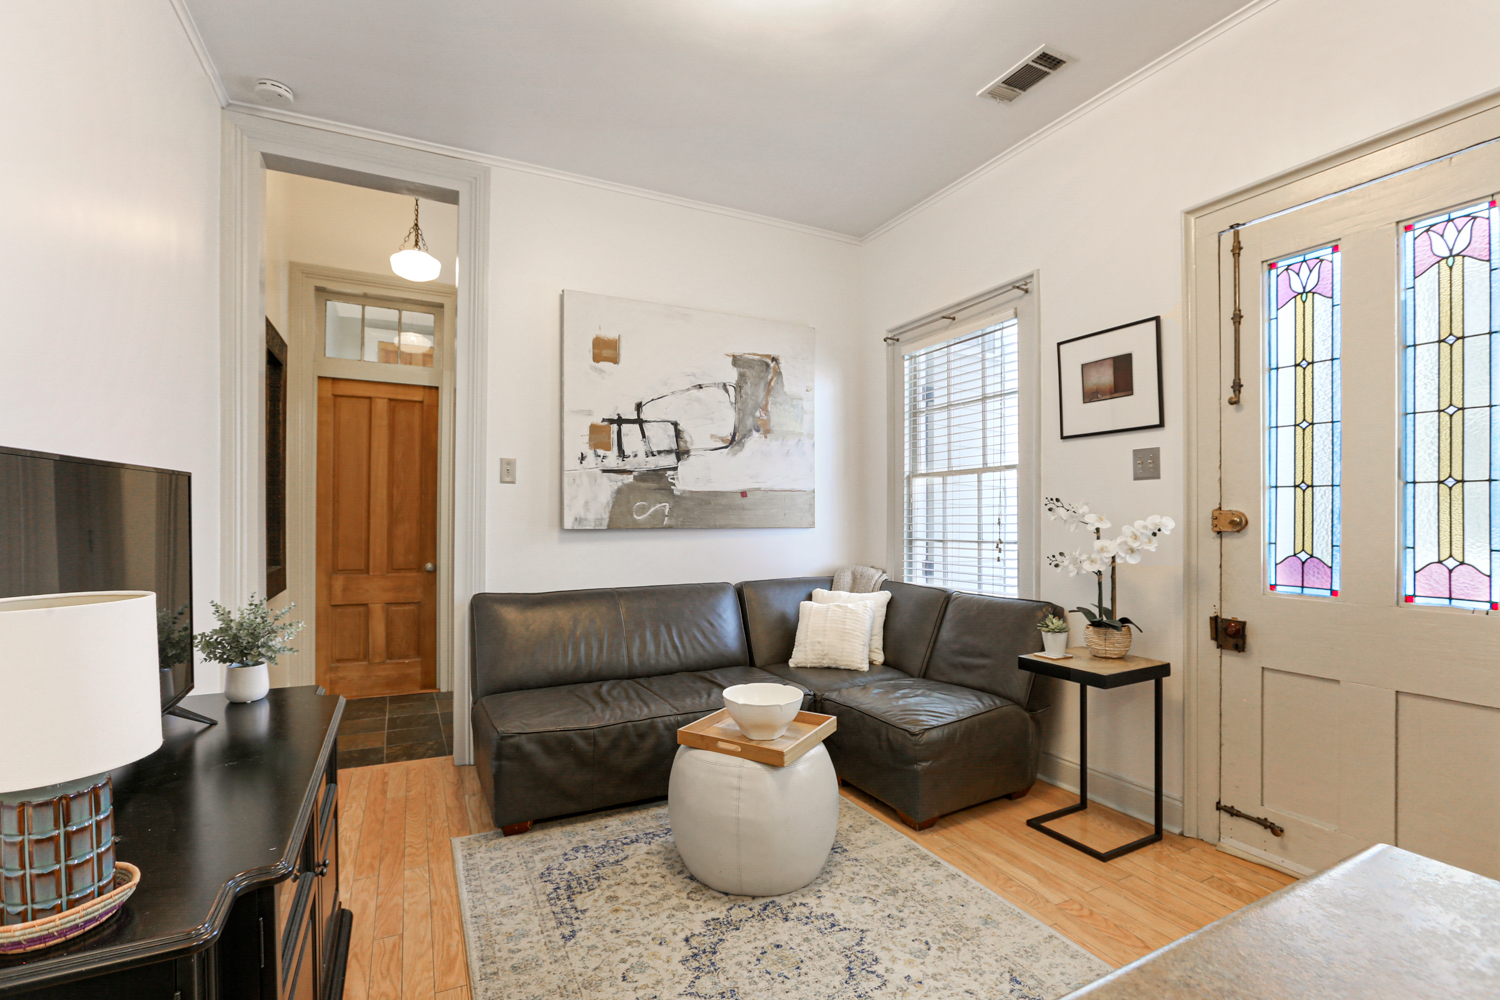 Garden District, Apartment, 1 beds, 1.0 baths, $2100 per month New Orleans Rental - devie image_2